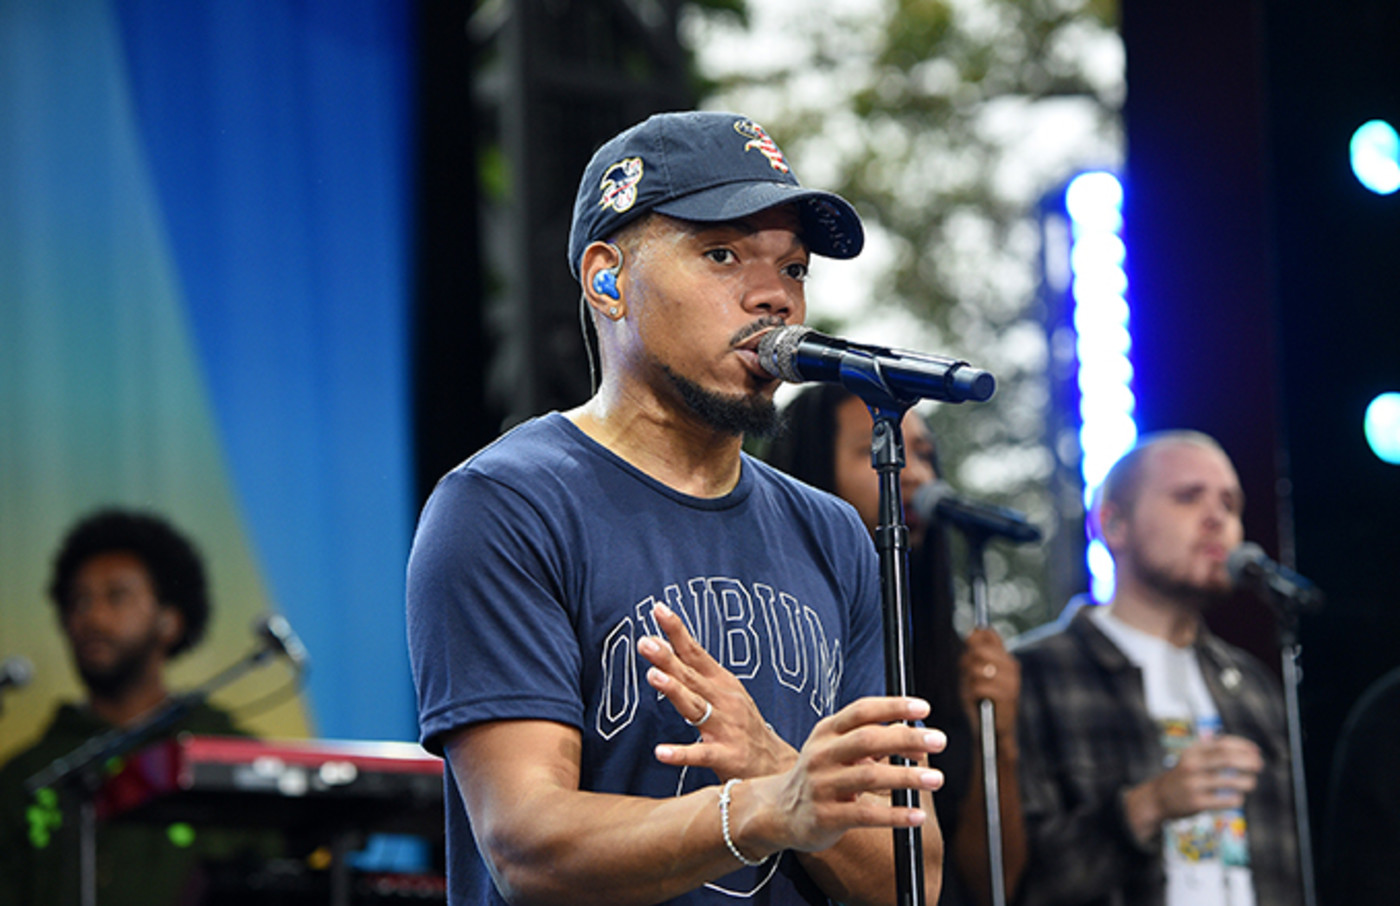 Chance the Rapper on Good Morning America